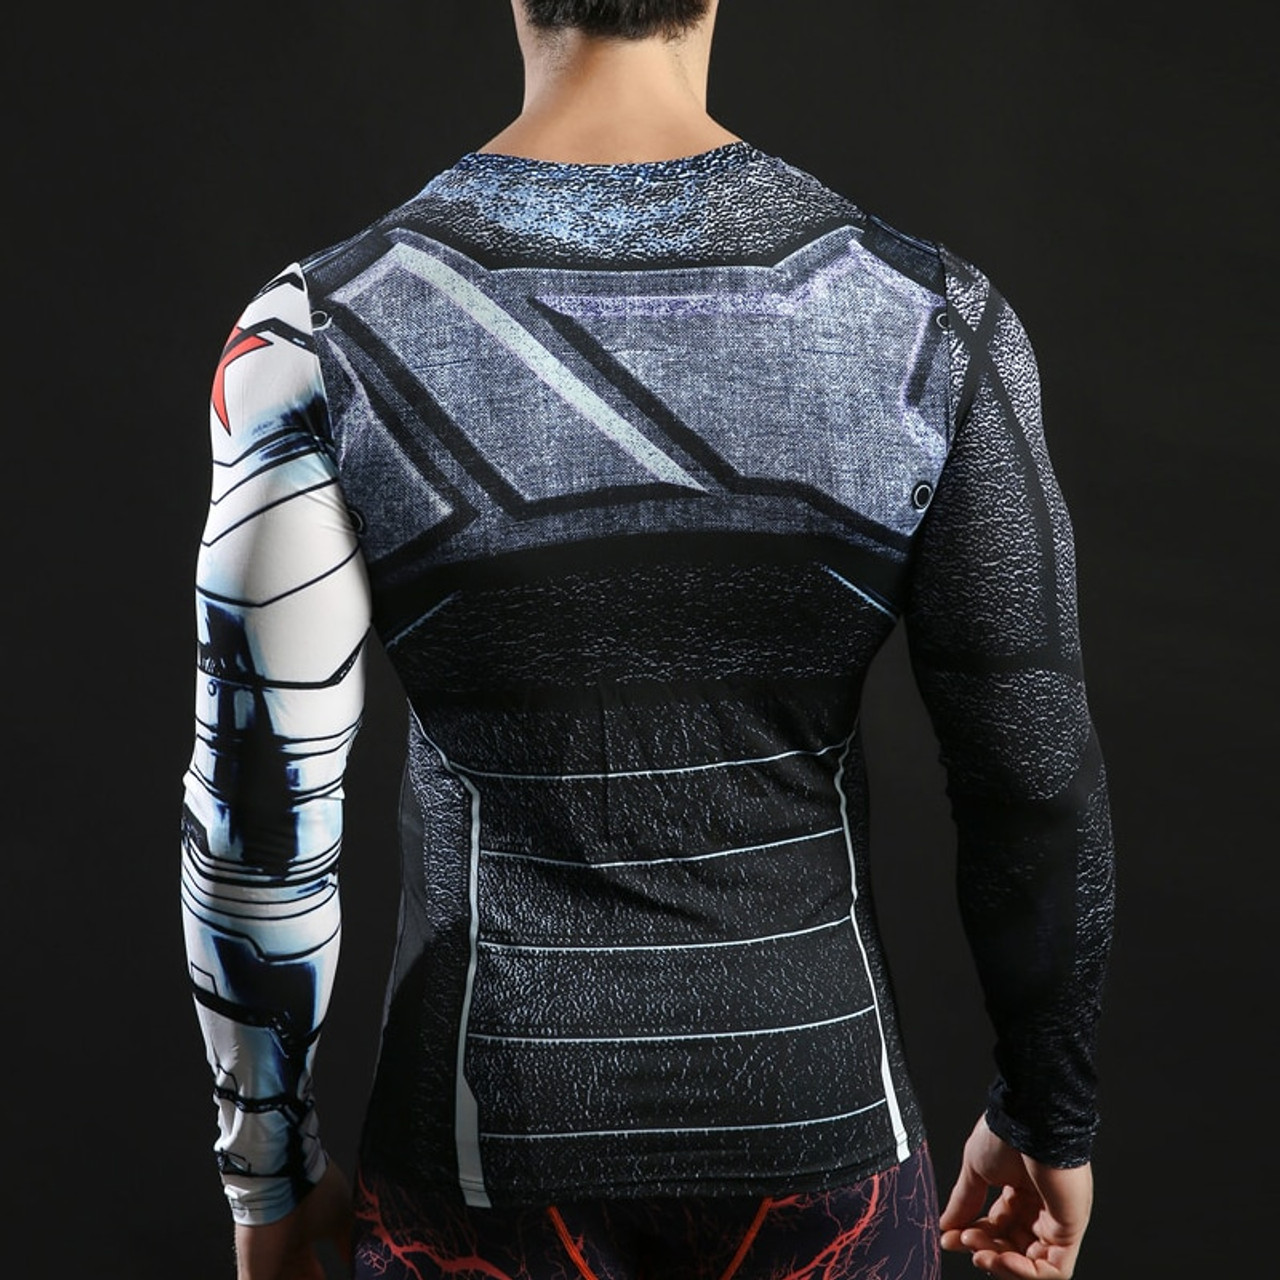 31a71a8fb6e5 ... Winter Soldier Tshirts 3d Printed Long Sleeve Tops Men Compression  Fitness Camiseta 2017 American Captain Tees ...